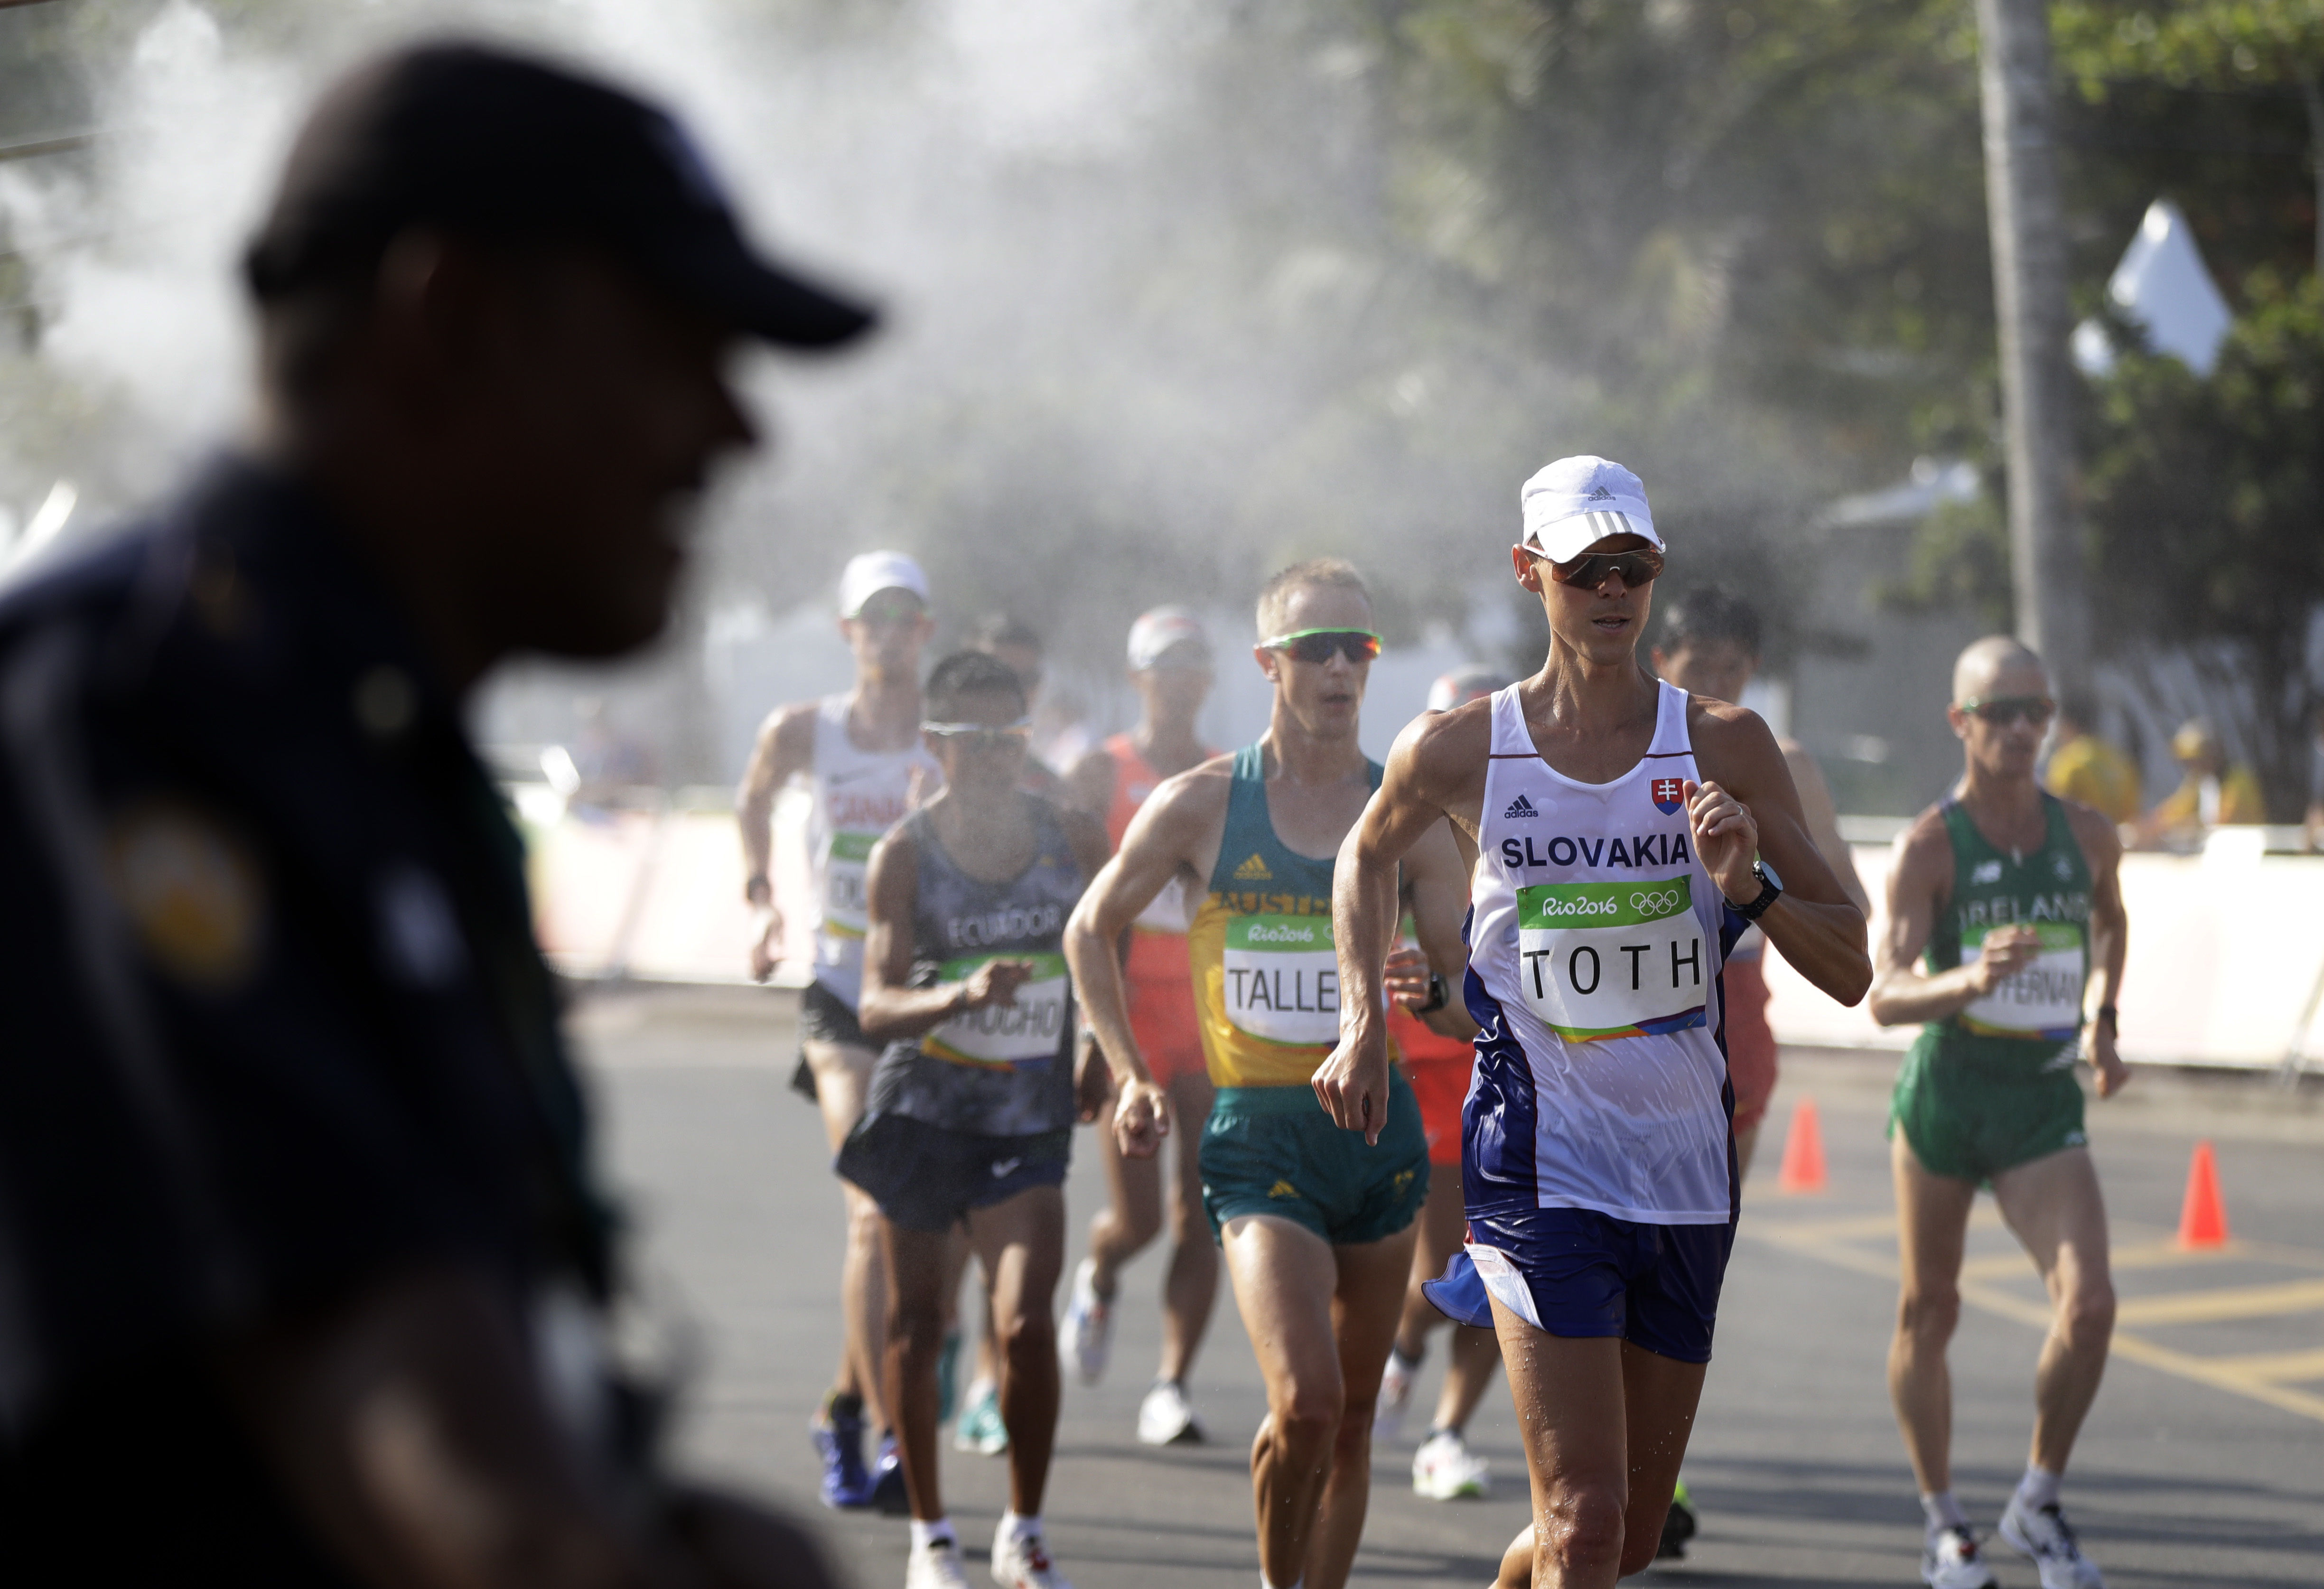 Competitors pass through a misting station during the men's 50-km race walk at the 2016 Summer Olympics in Rio de Janeiro, Brazil, Friday, Aug. 19, 2016. (AP Photo/Robert F. Bukaty)